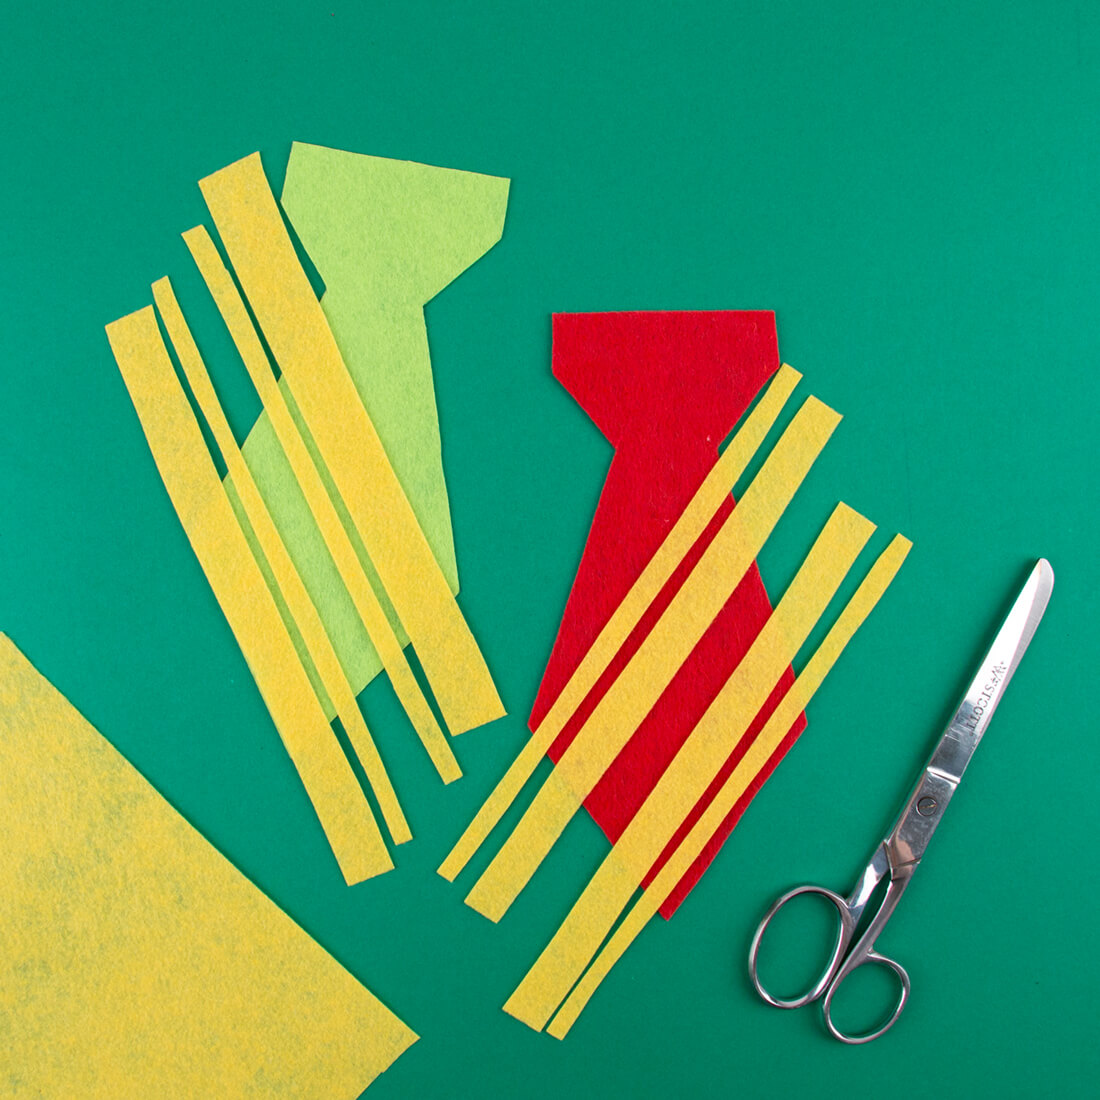 Making a free Harry Potter's tie, Gryffindor or Slytherin